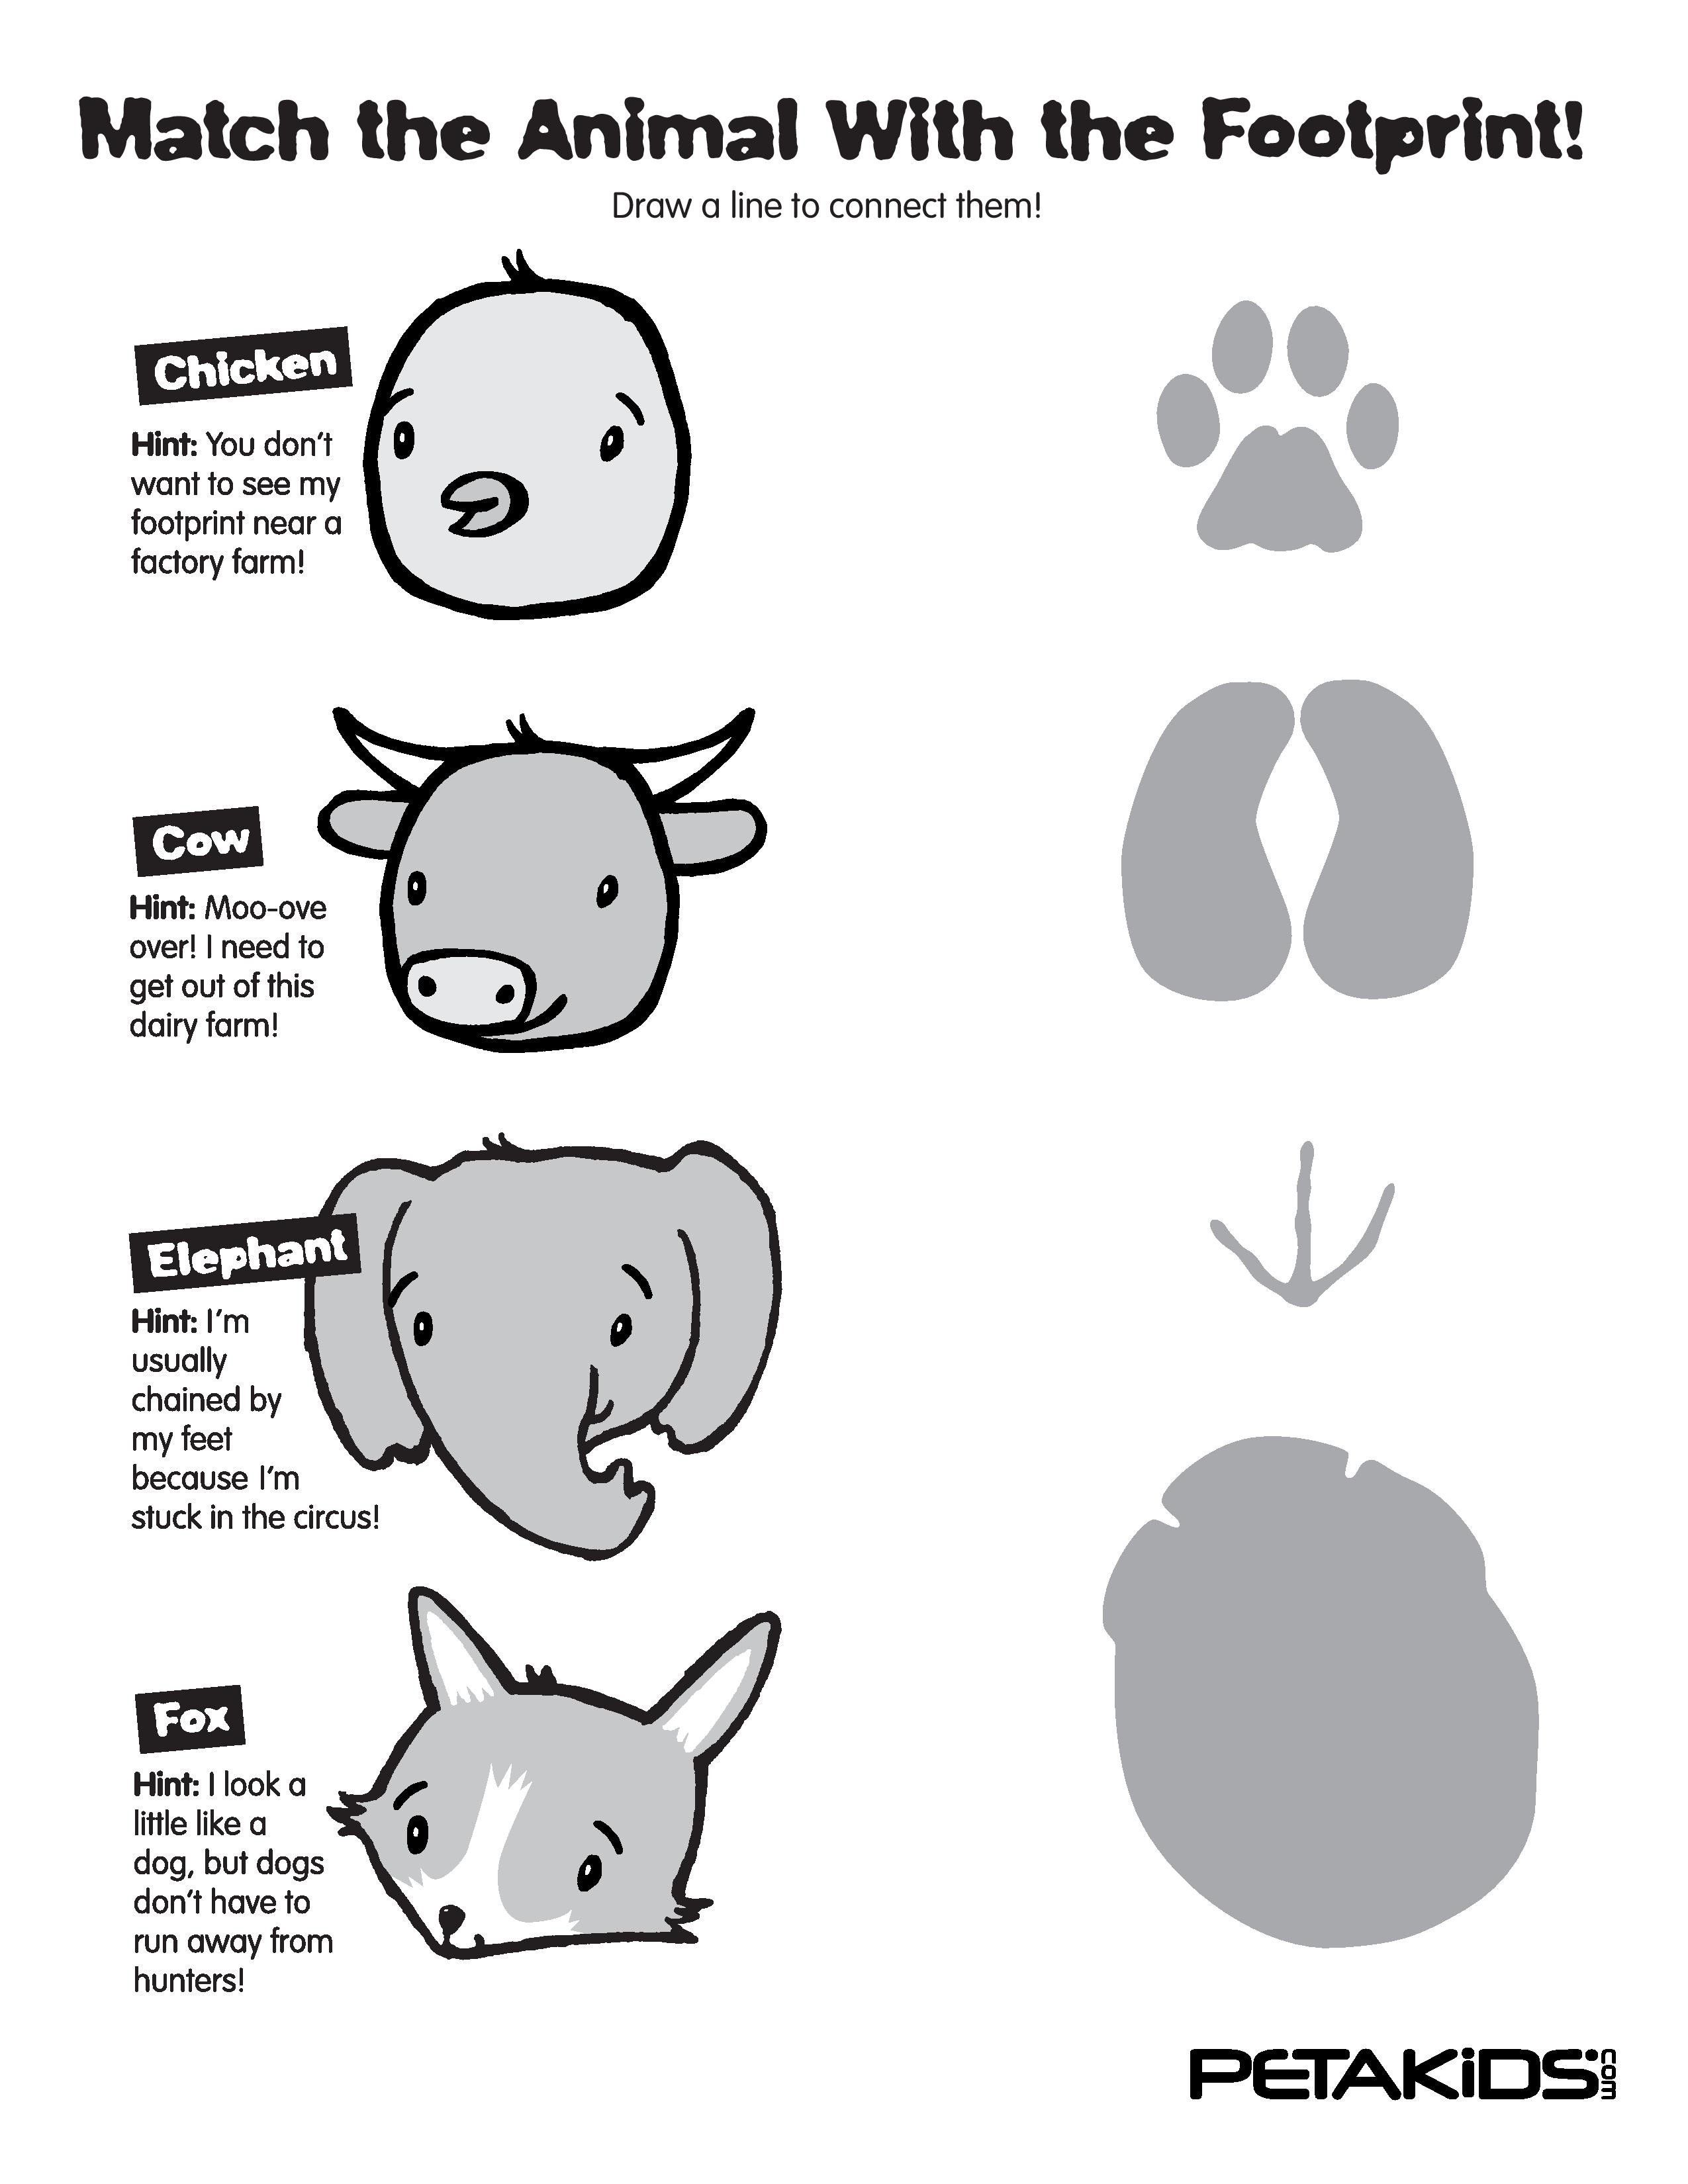 Animal Footprints Match Them All